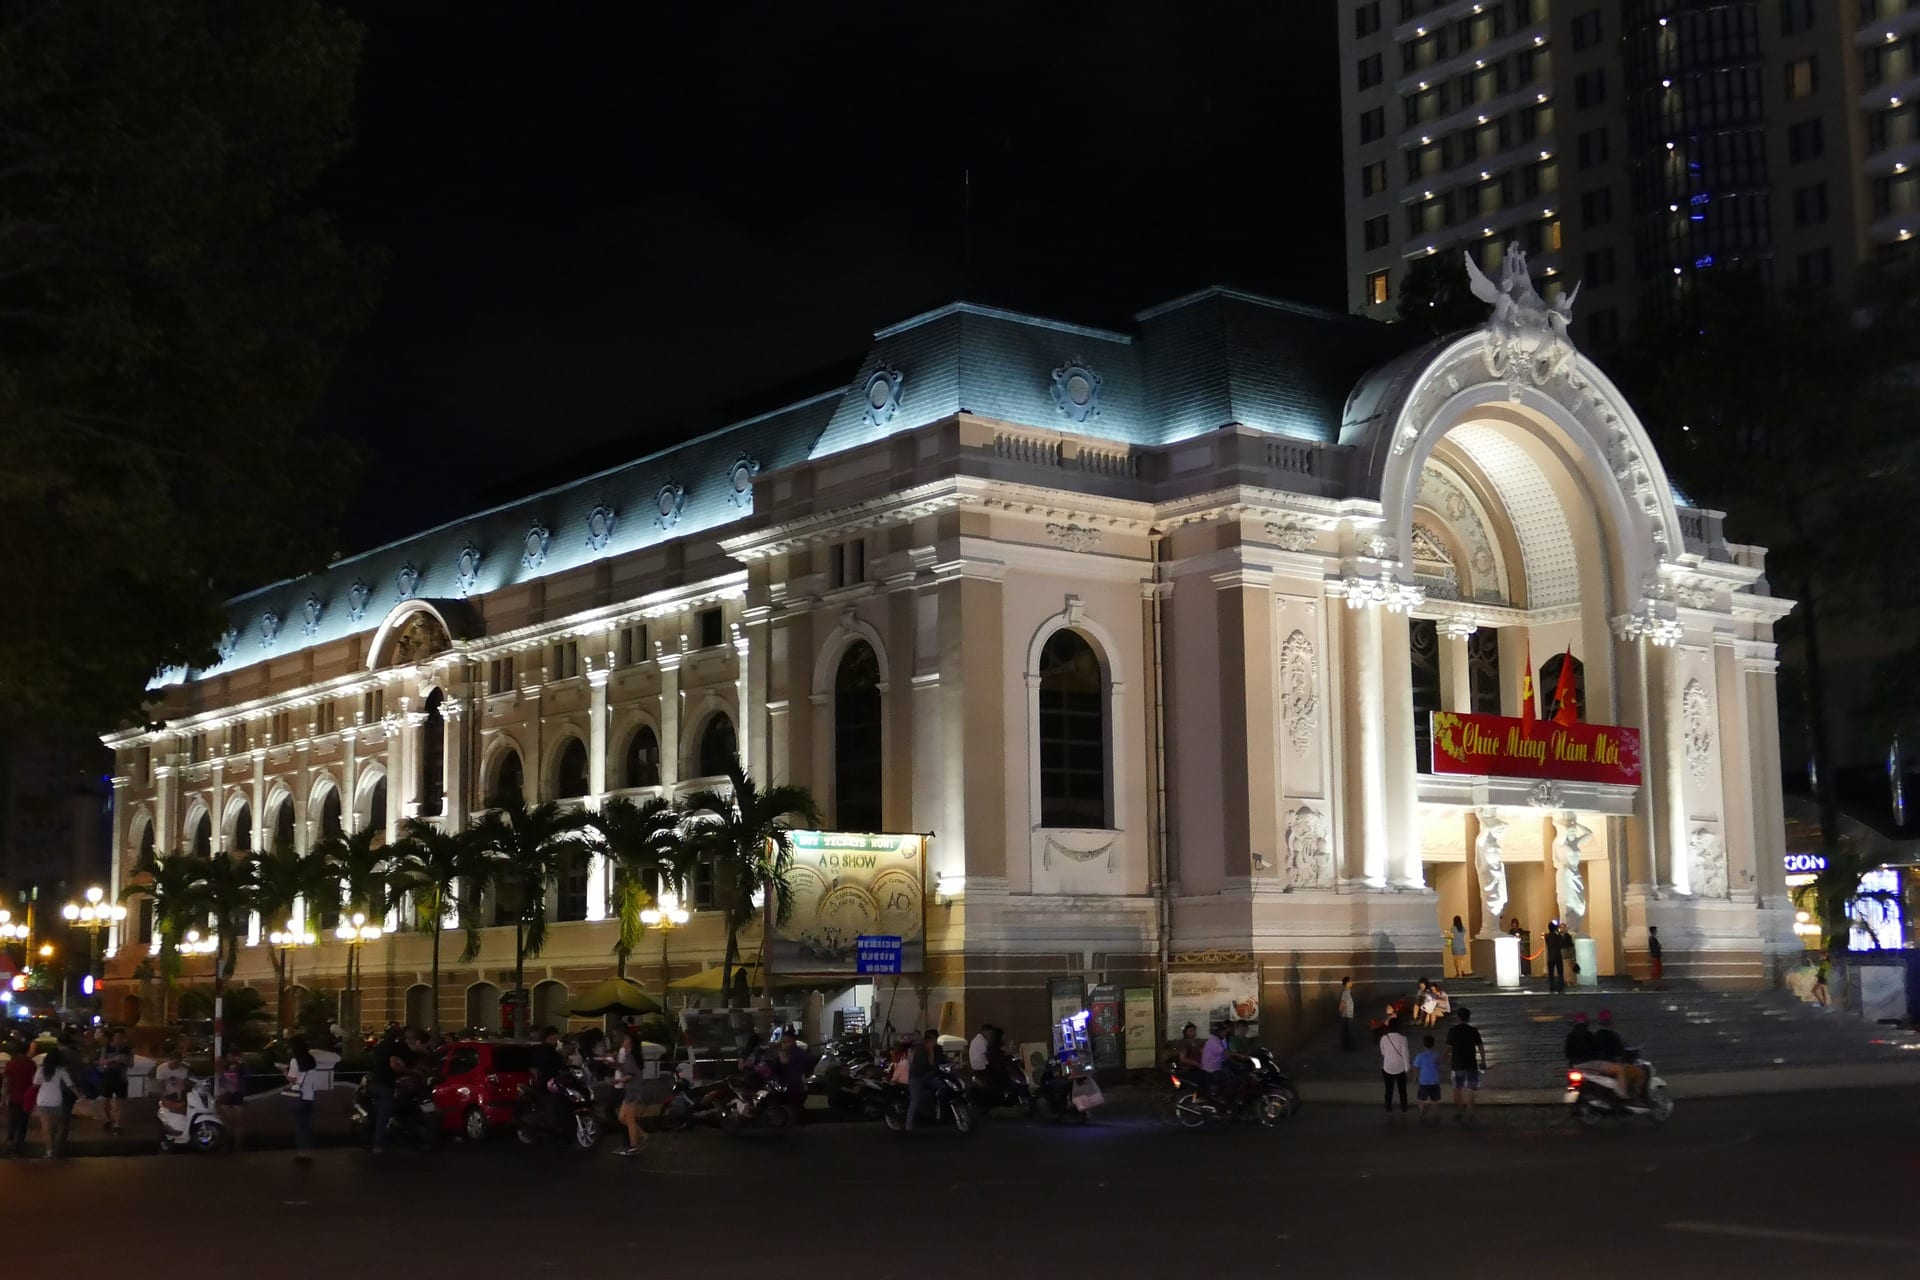 Saigon Opera House is a place you should visit when in Ho Chi Minh city